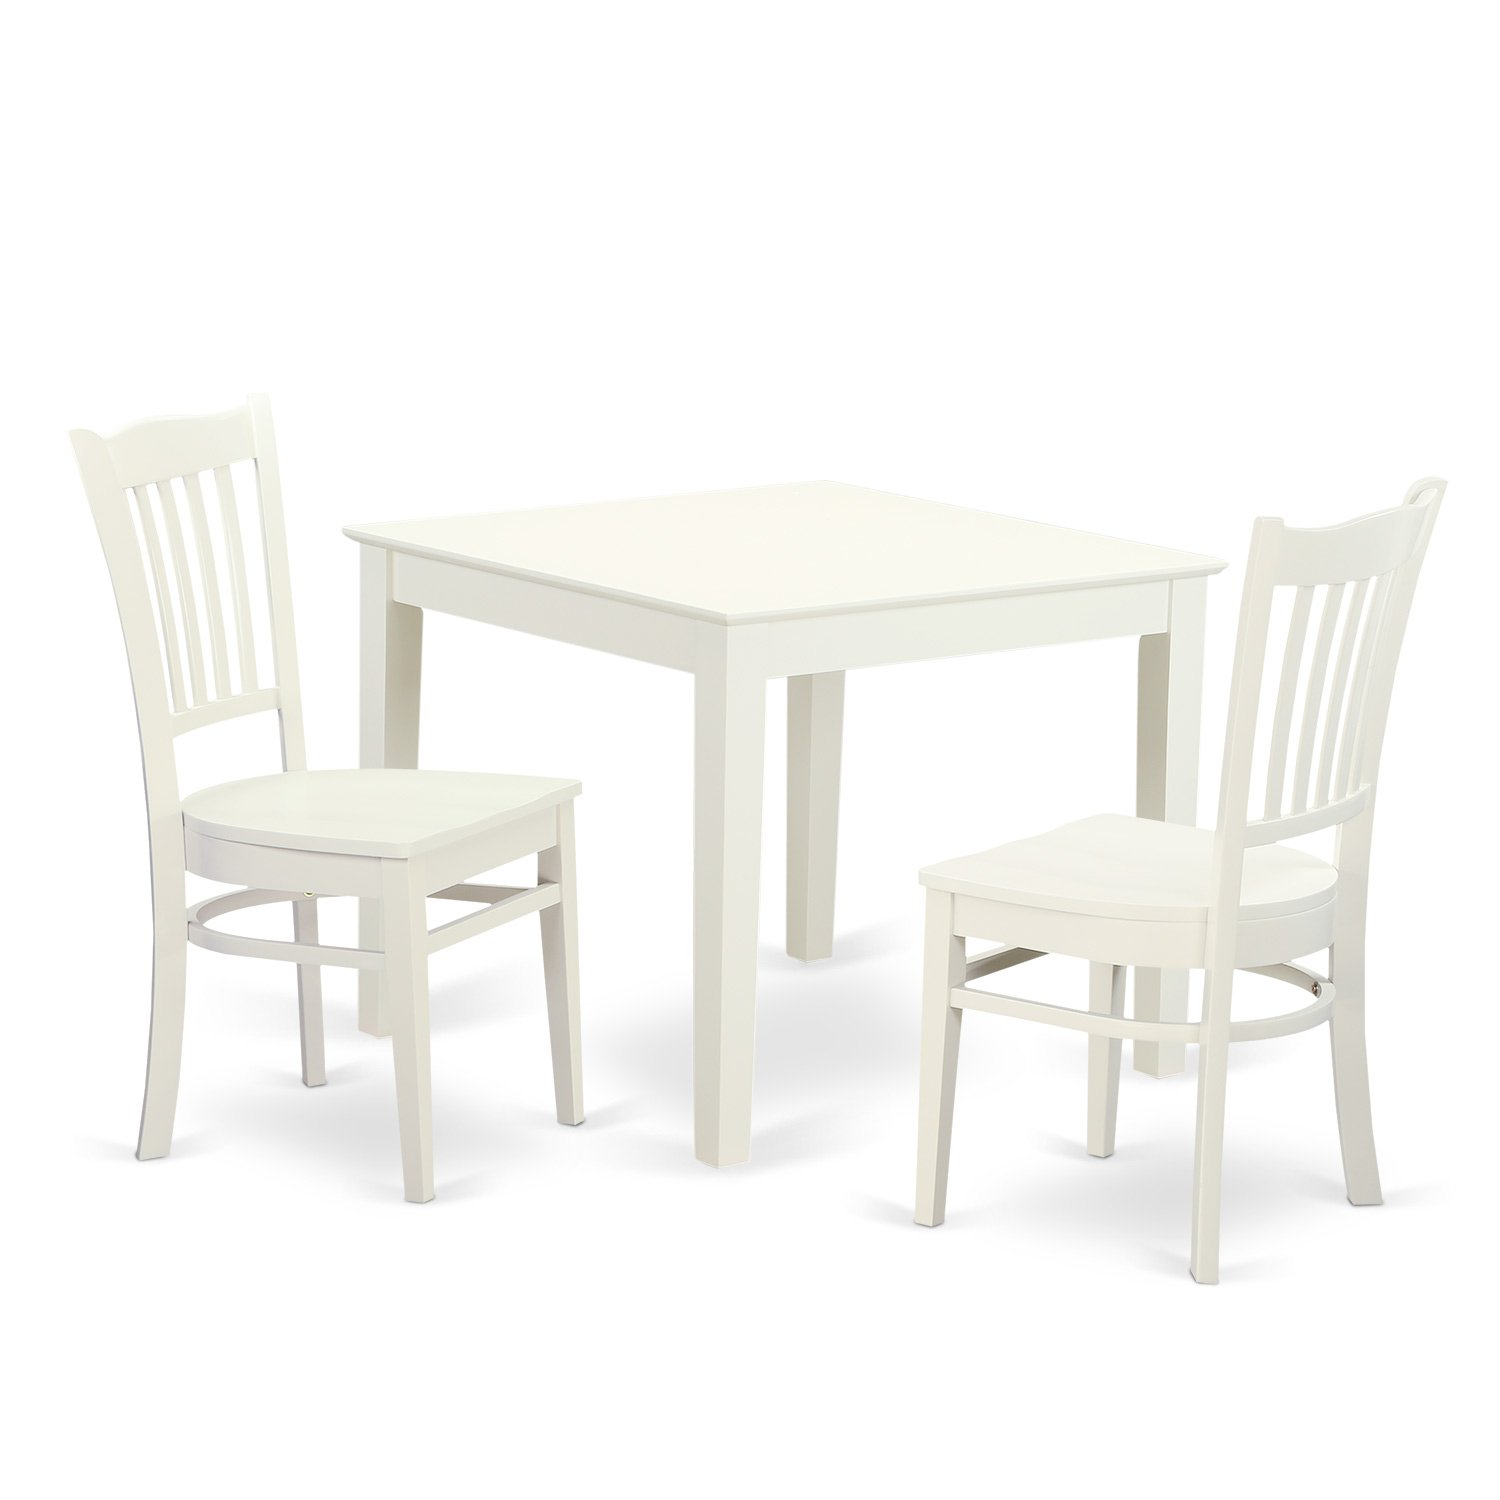 East West Furniture OXGR3-LWH-W 3Piece Breakfast Nook Table & 2 Wood Dining Room Chair in Linen White Finish